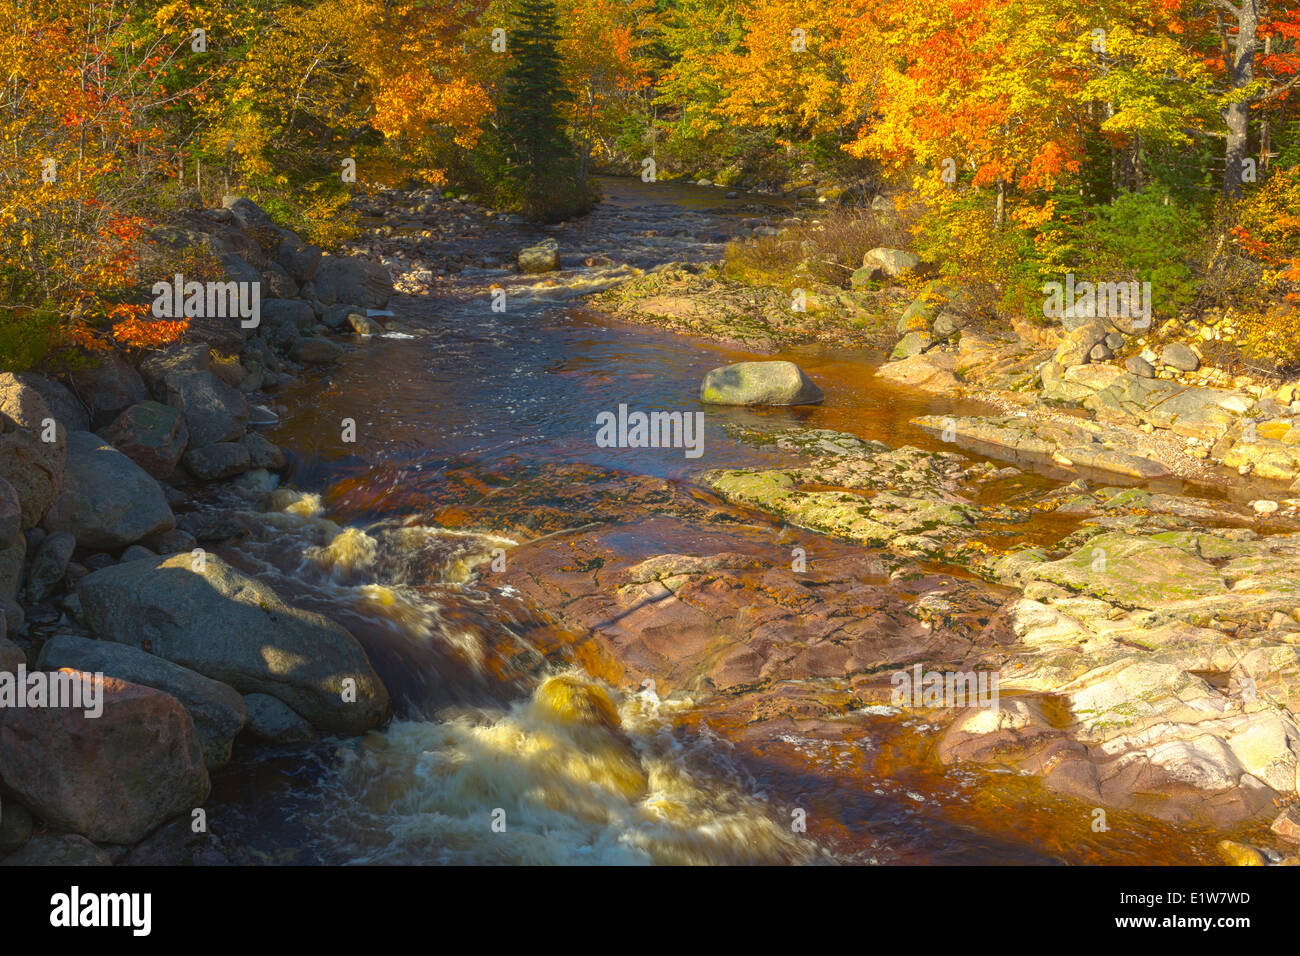 Noch Brook, Kap-Breton-Highlands-Nationalpark, der Cabot Trail, Cape Breton, Nova Scotia, Kanada Stockbild